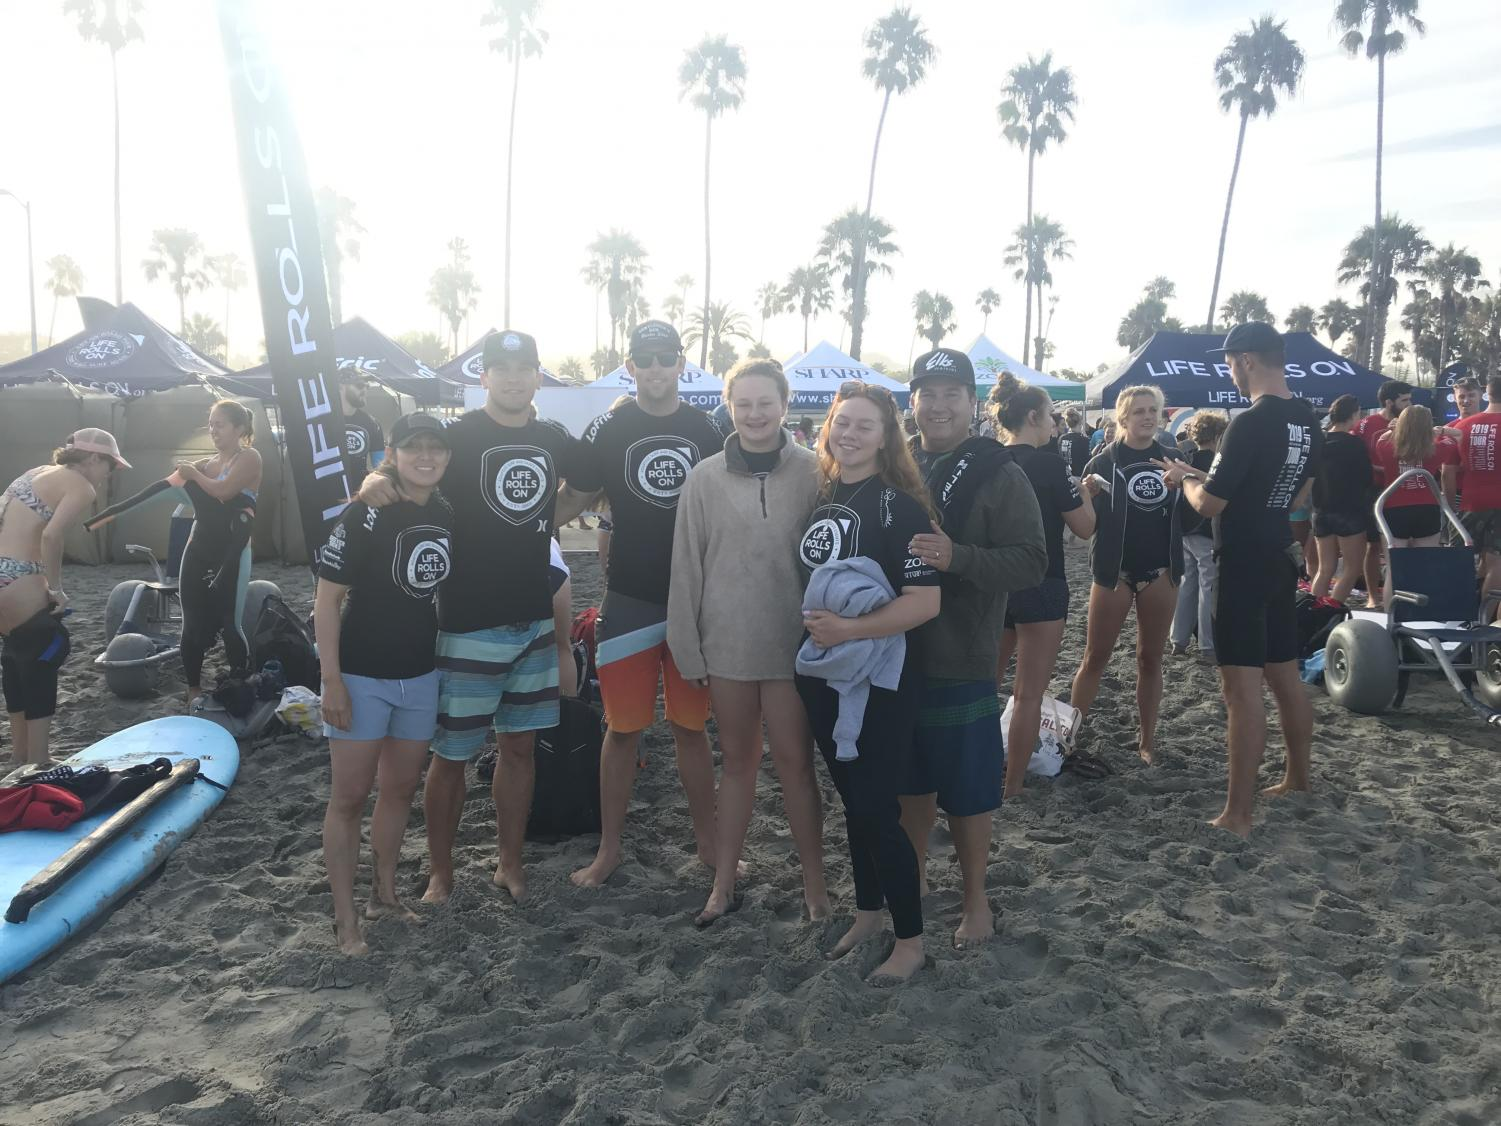 The Reyes family gathers with big smiles to capture the moment at the Life Rolls on event. The surf event took place on September 22, 2019.